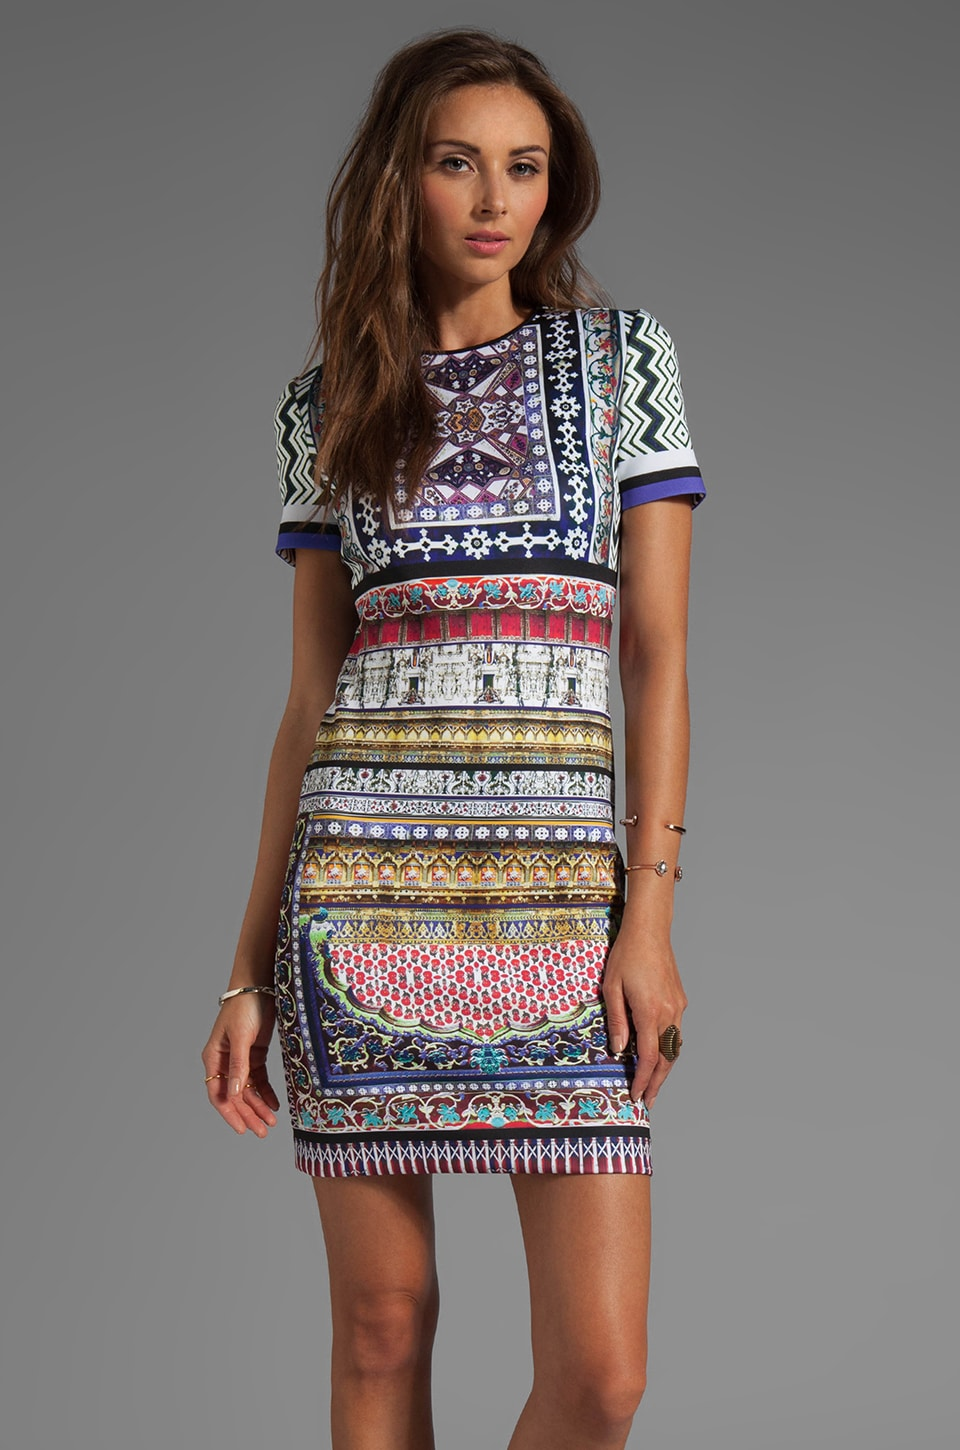 Clover Canyon City Palace Neoprene Dress in Multi